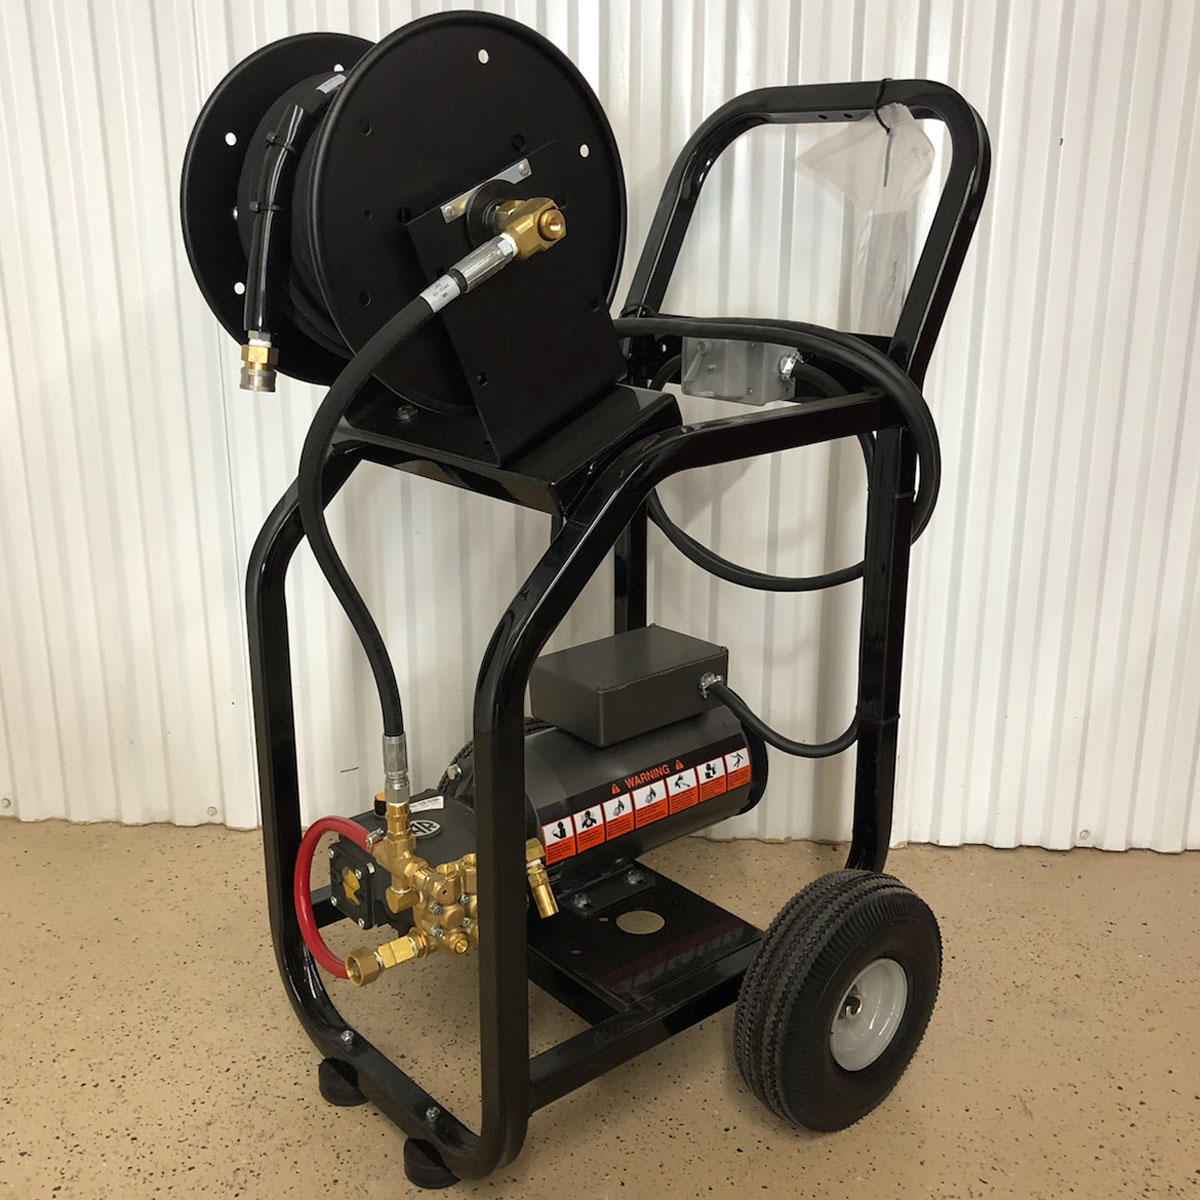 The Same #MB1502ER Cold Water Pressure Washer With Hose Reel